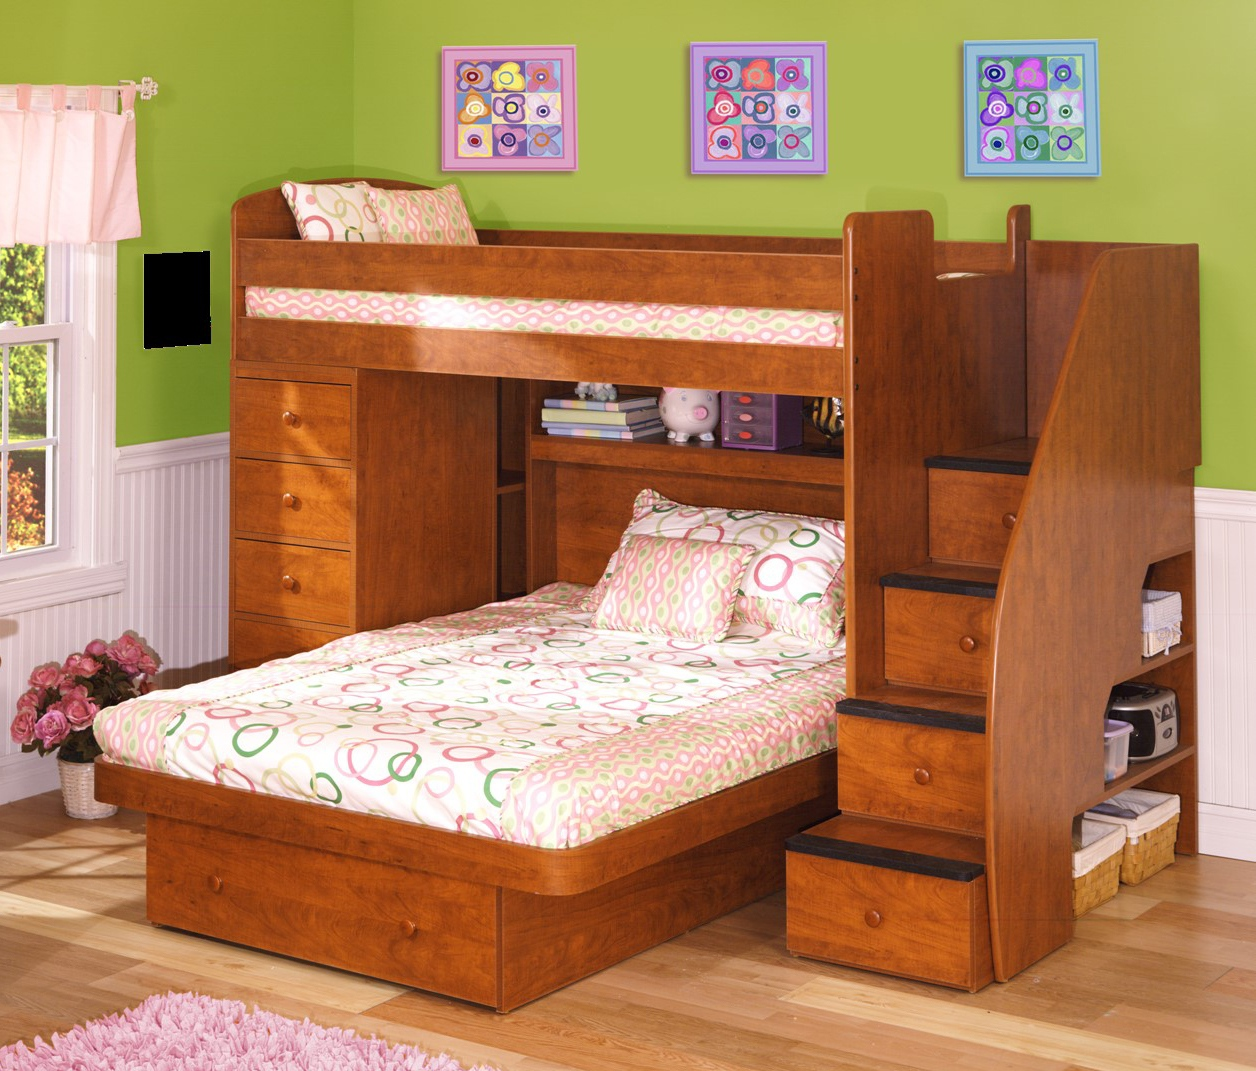 Simple L Shaped Bunk Beds For Small Bedroom Space: Solid Wood For L Shaped Bunk Beds Design